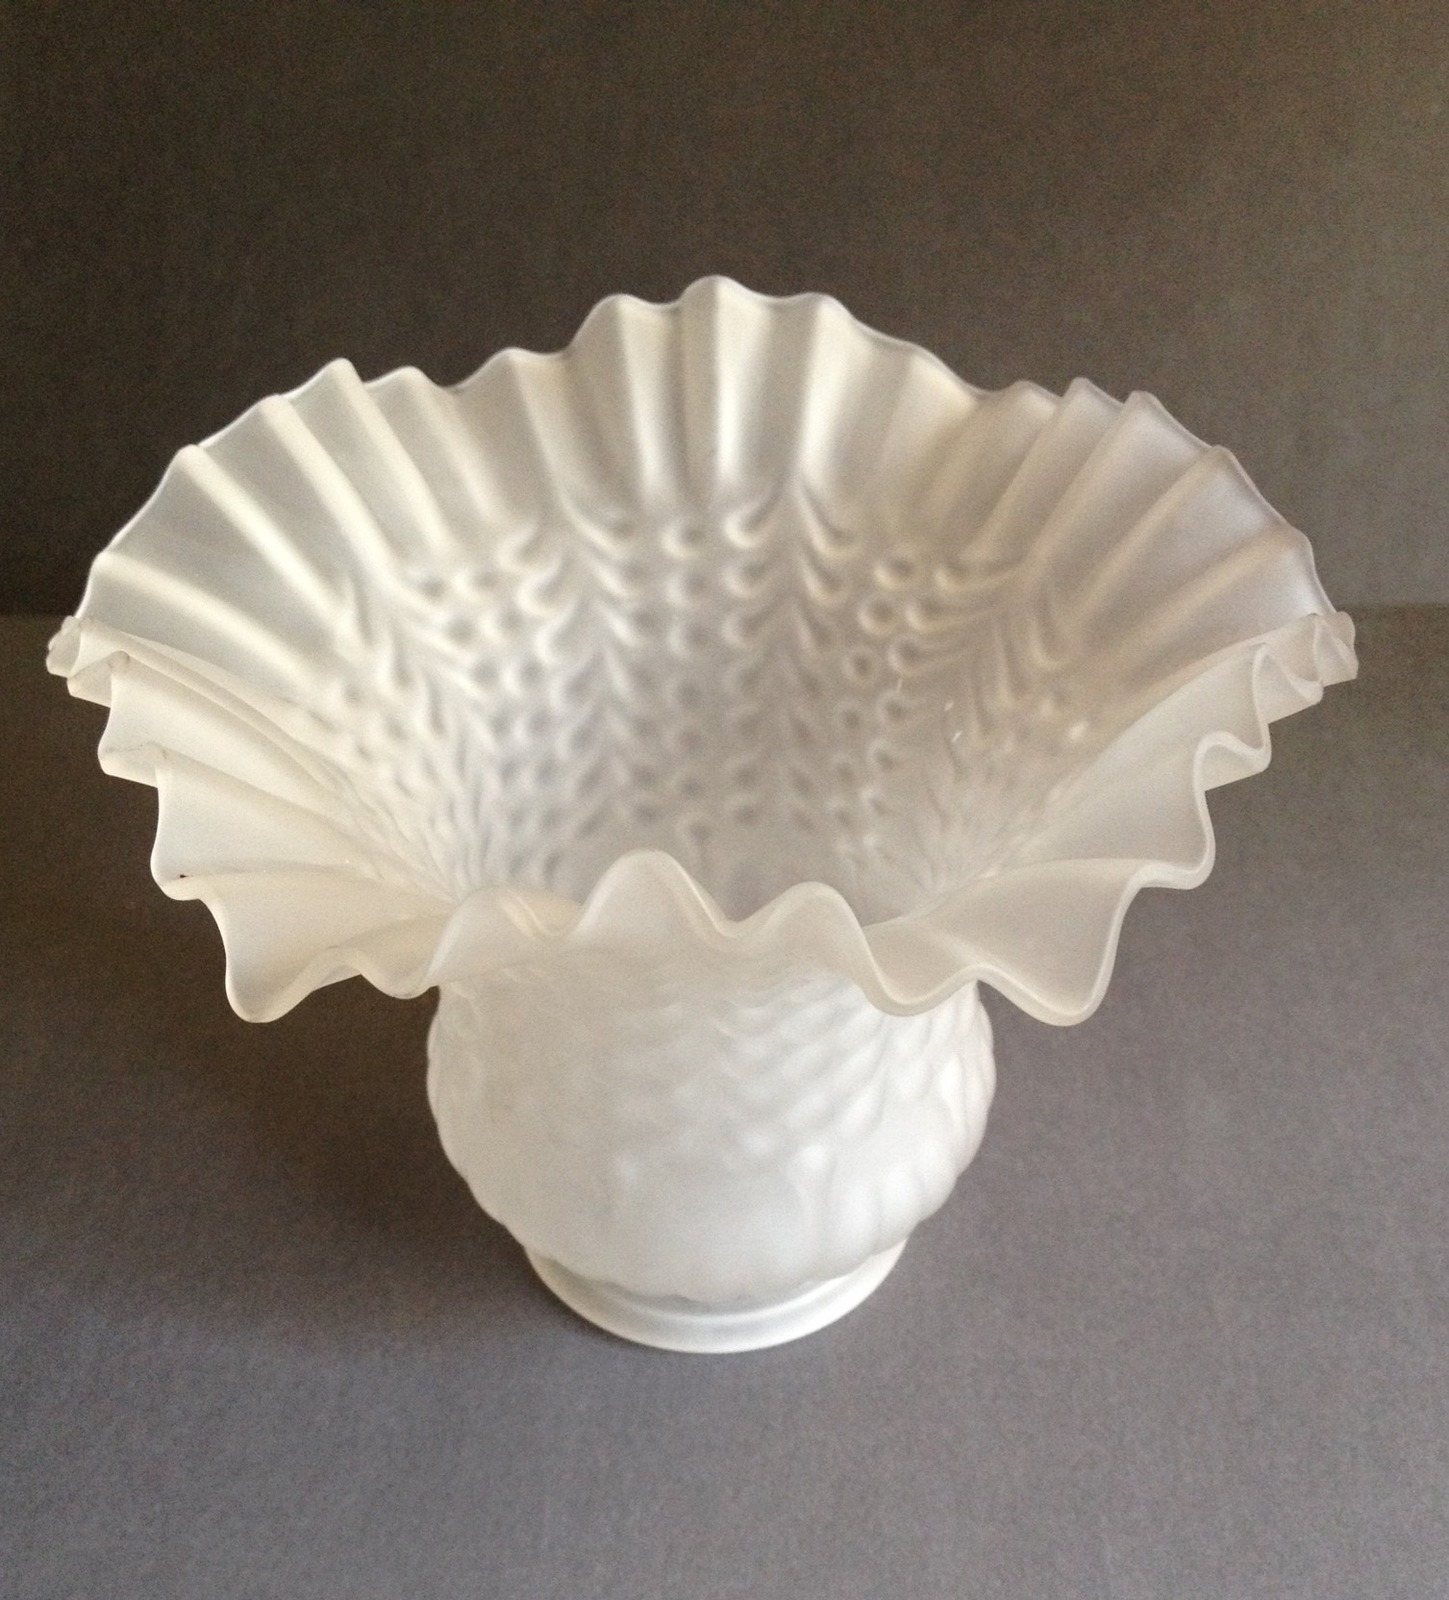 Vintage Frosted Fluted Hobnail Glass Globe Ceiling Fan Light Fixture, Home Decor